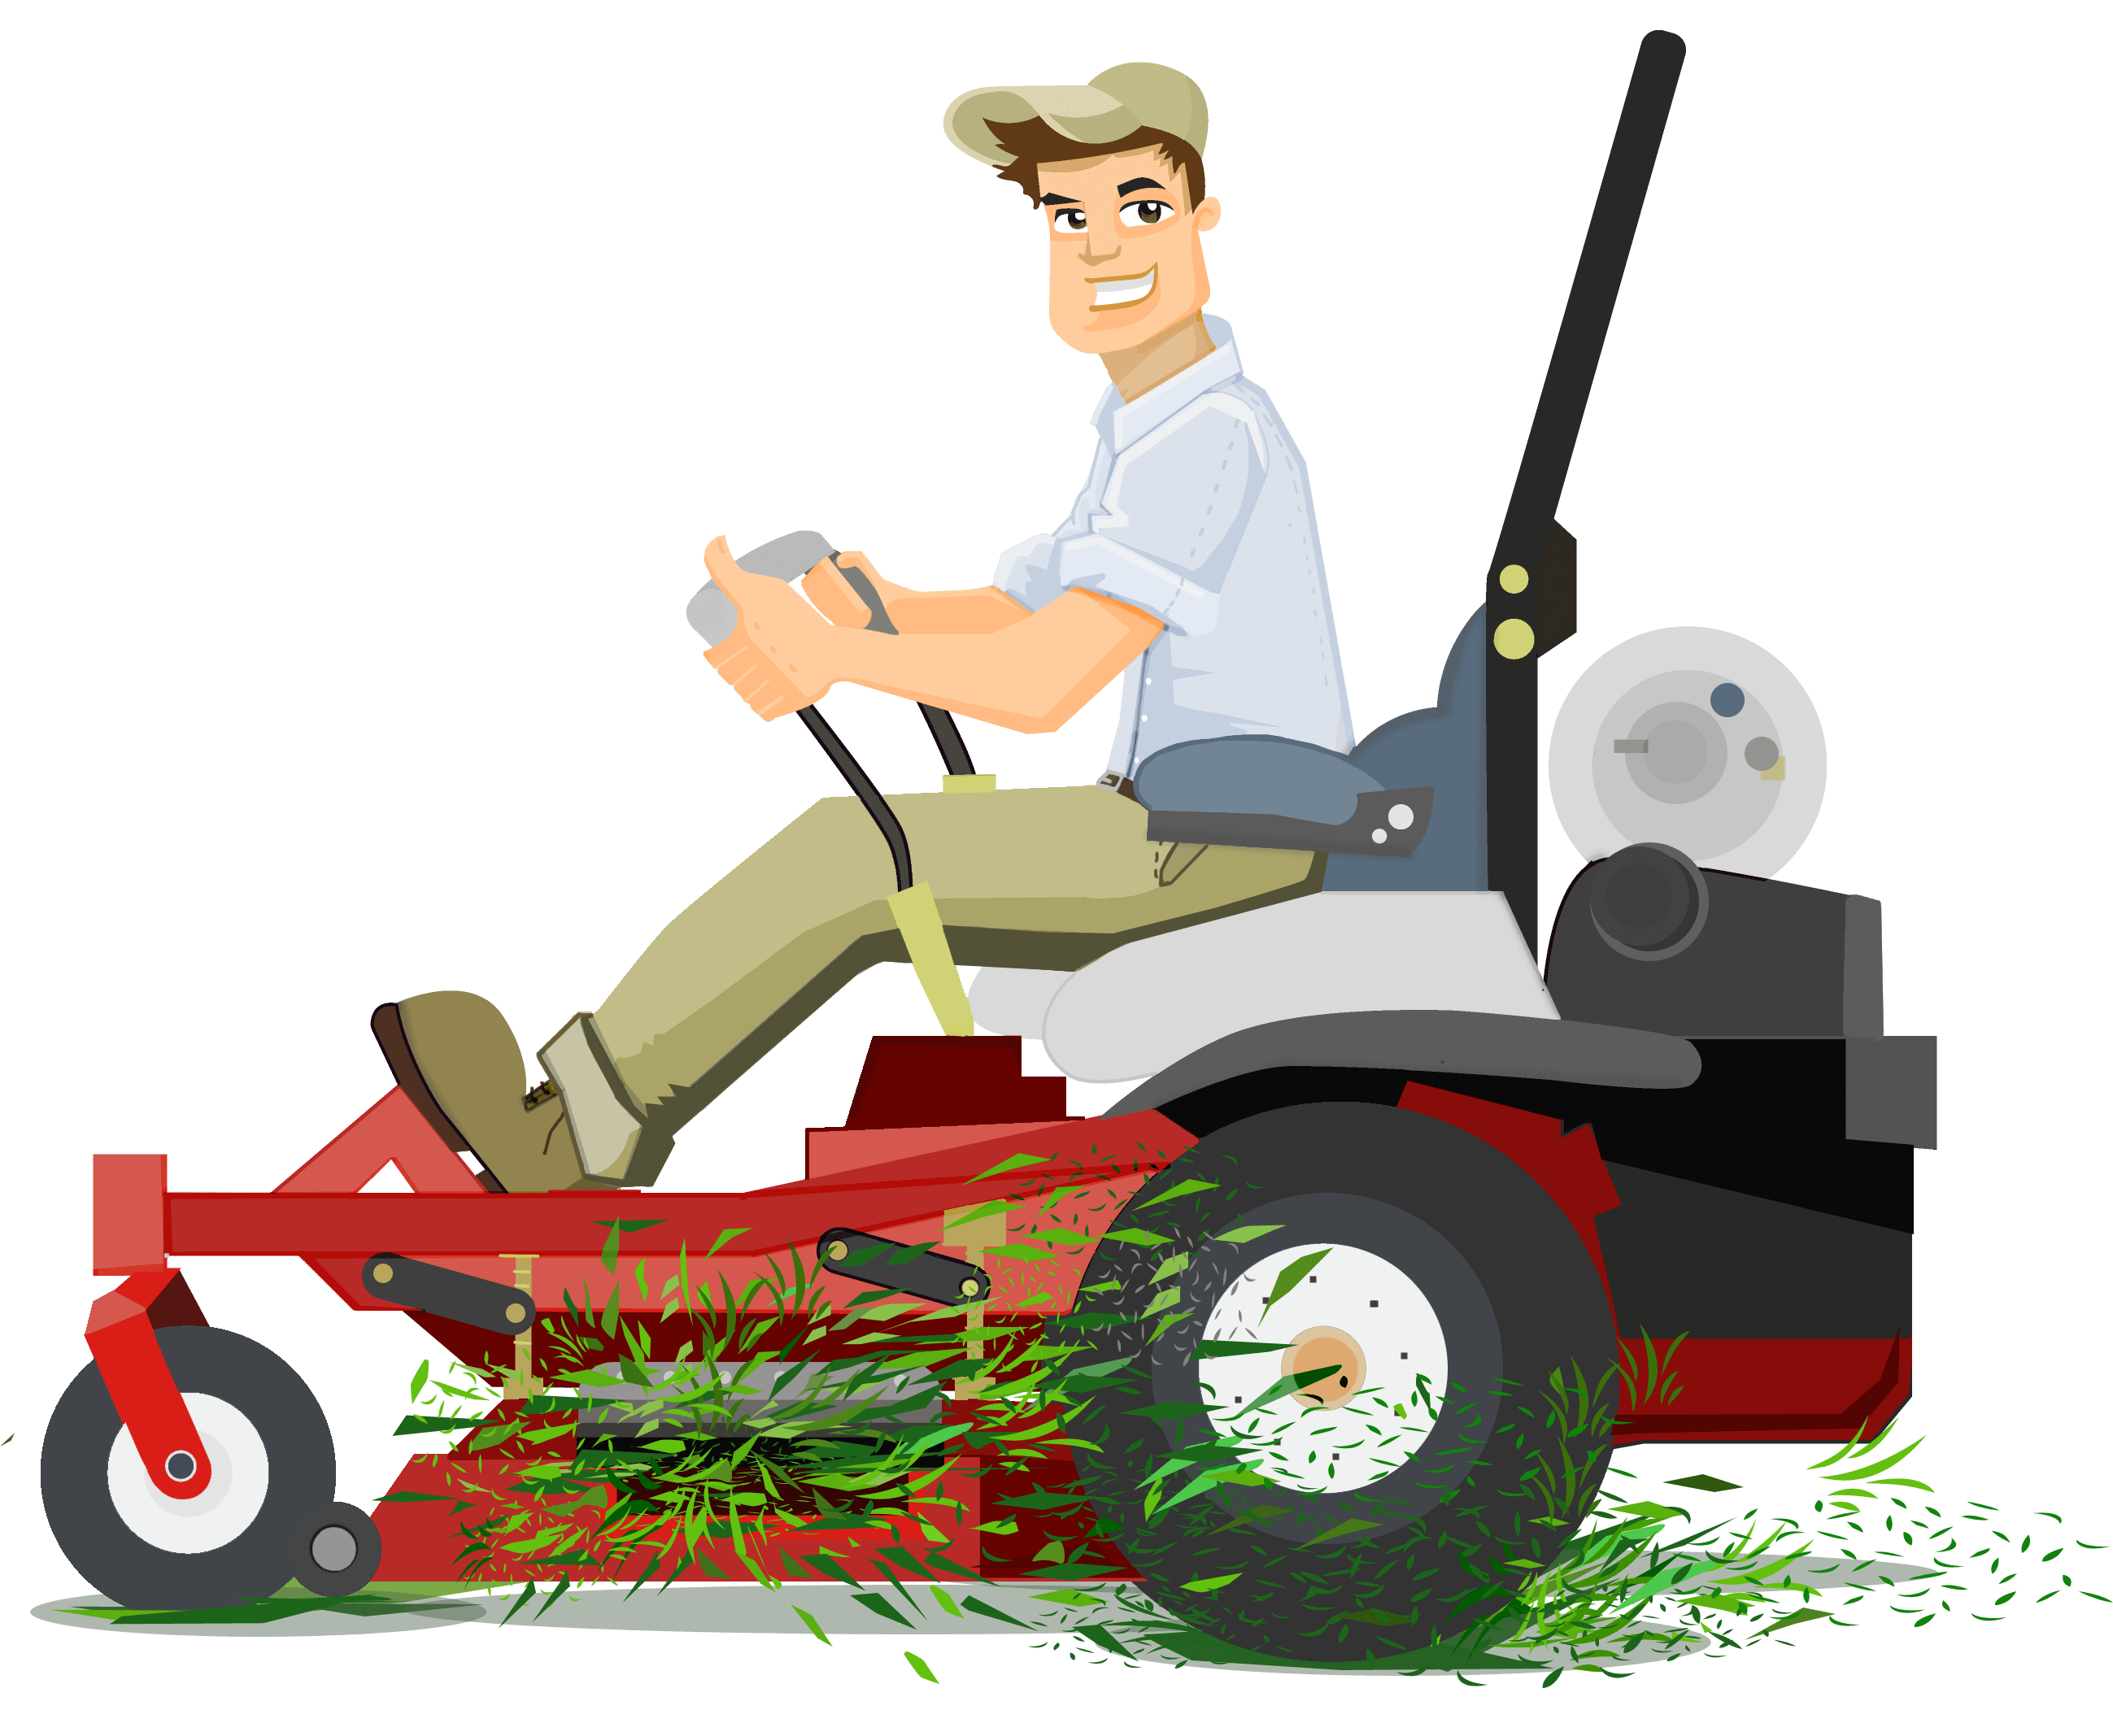 Lawnmower clipart landscaping. How to start a